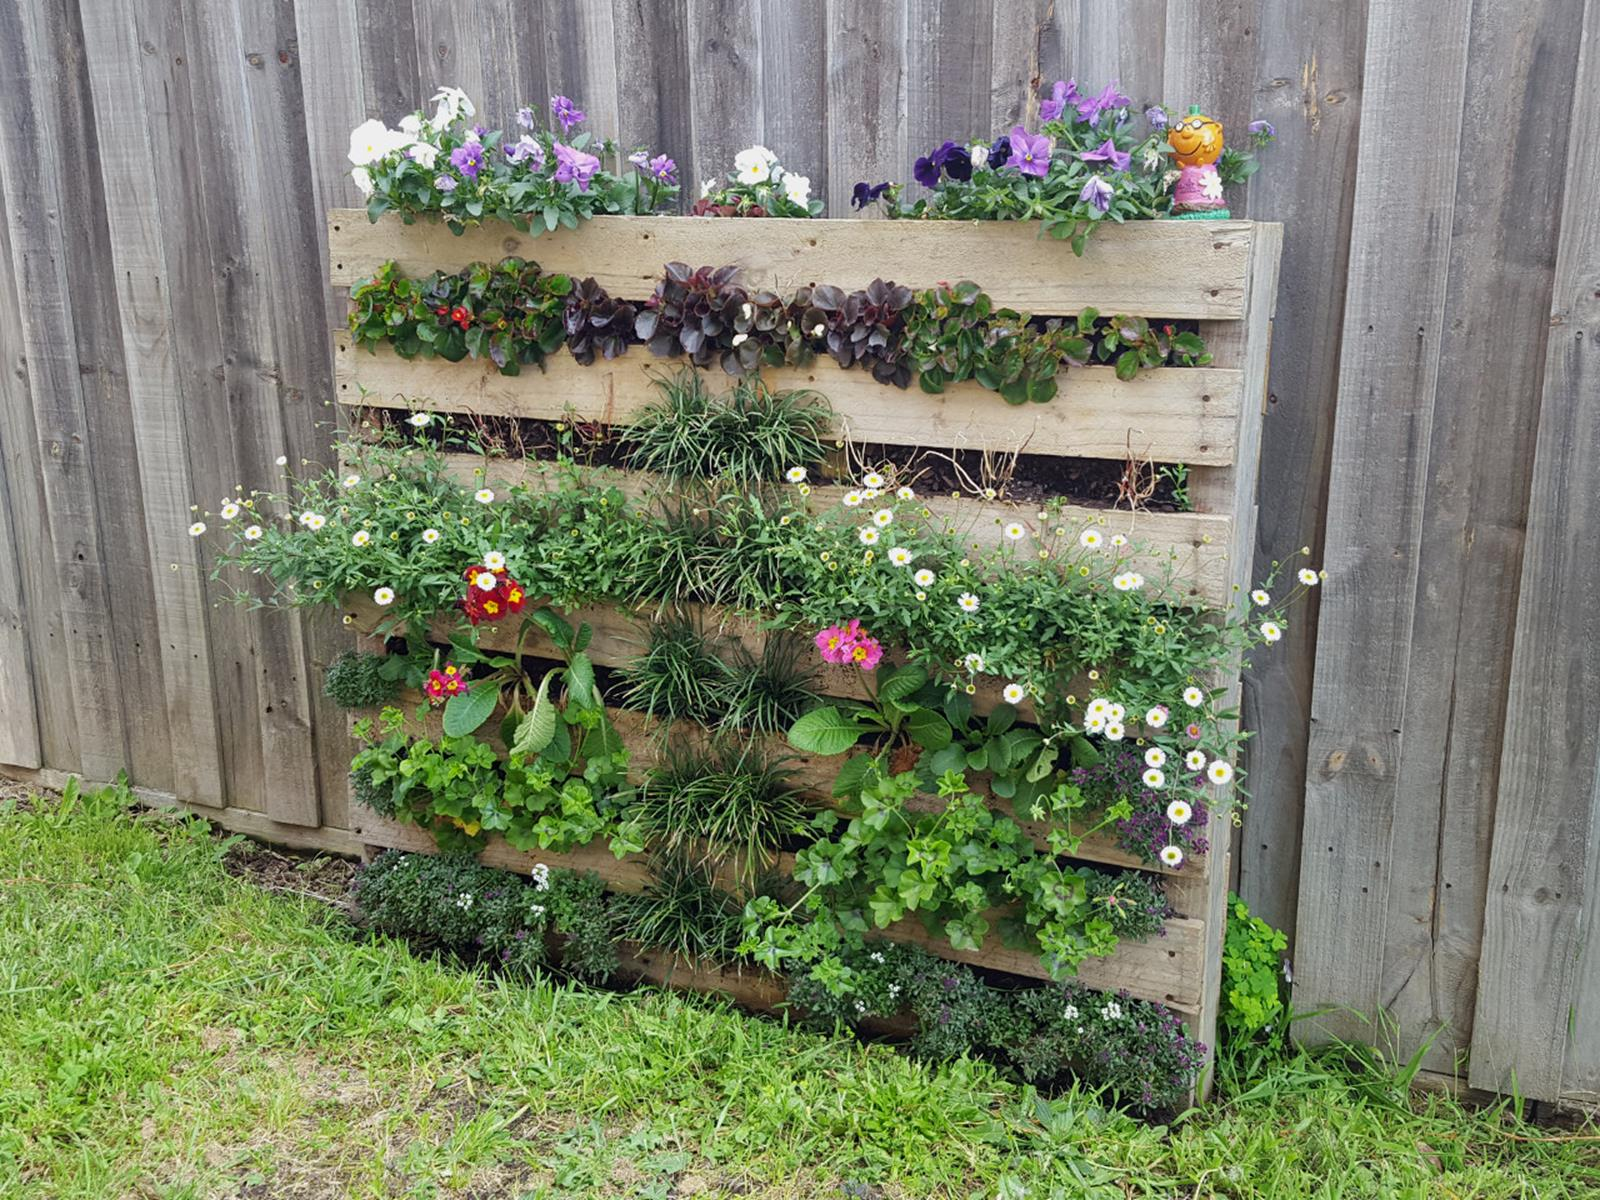 Upcycled Wood Pallet Gardens 9